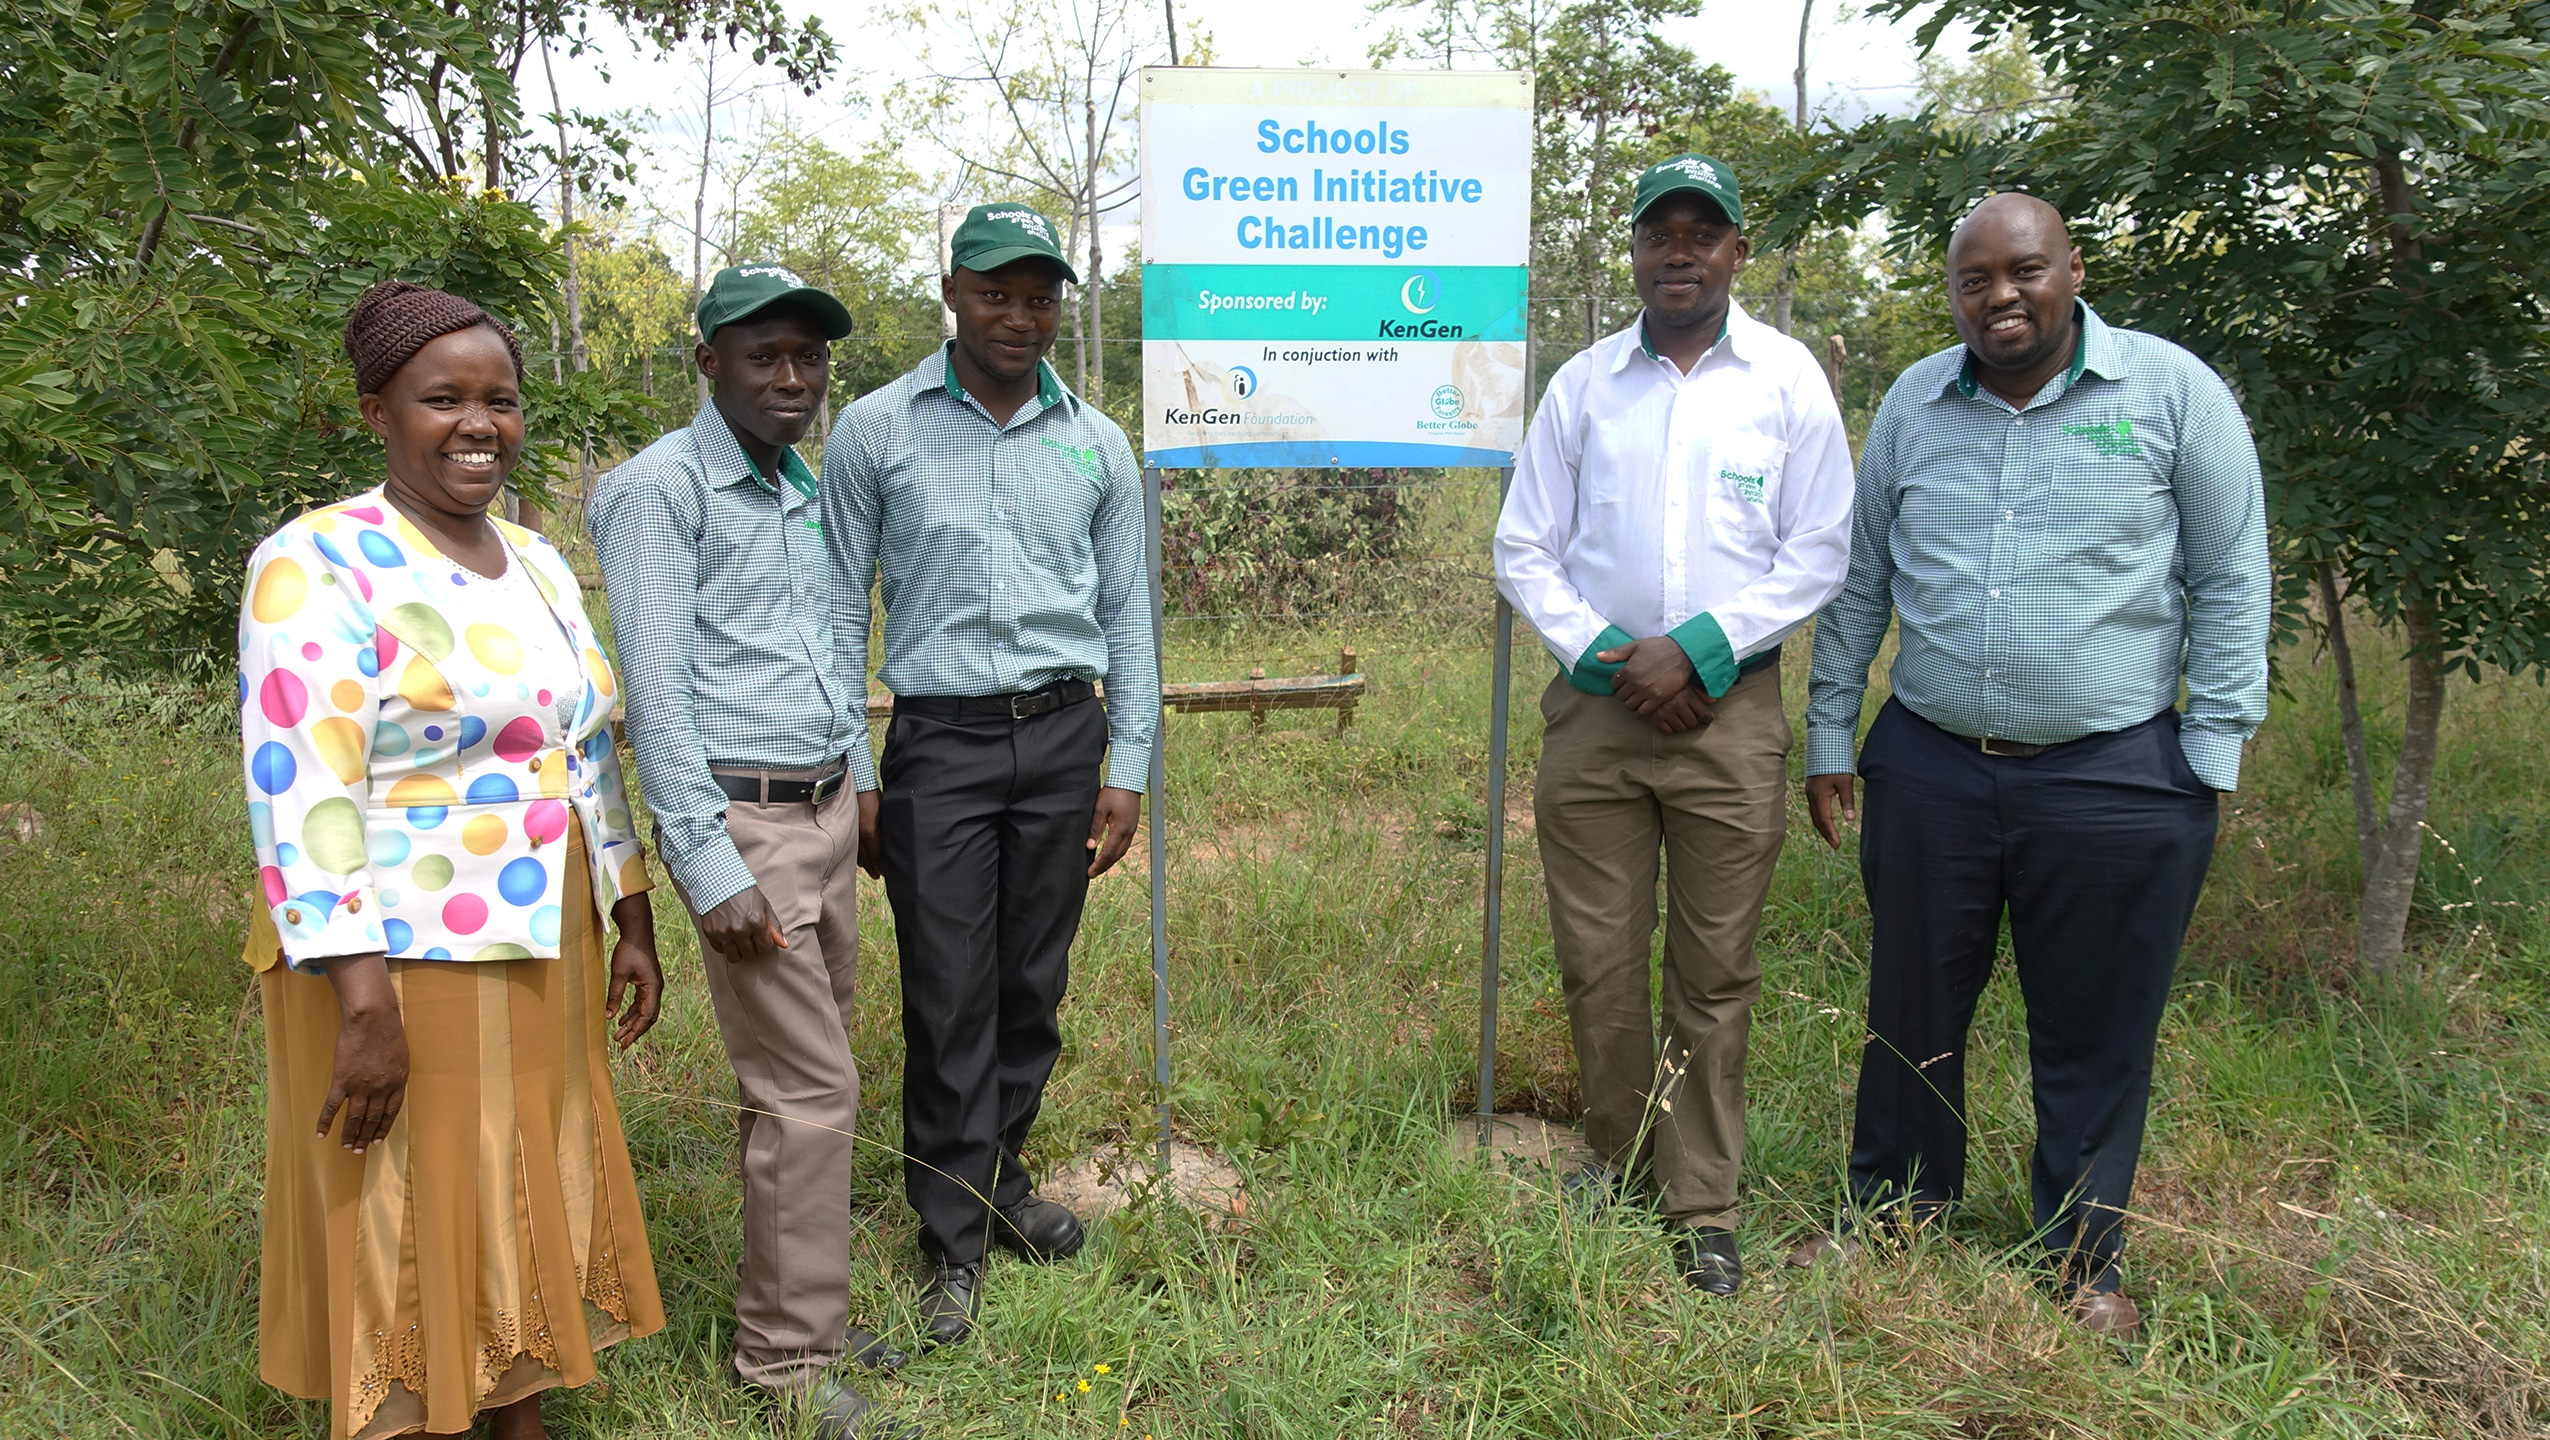 Schools engaged in tree planting